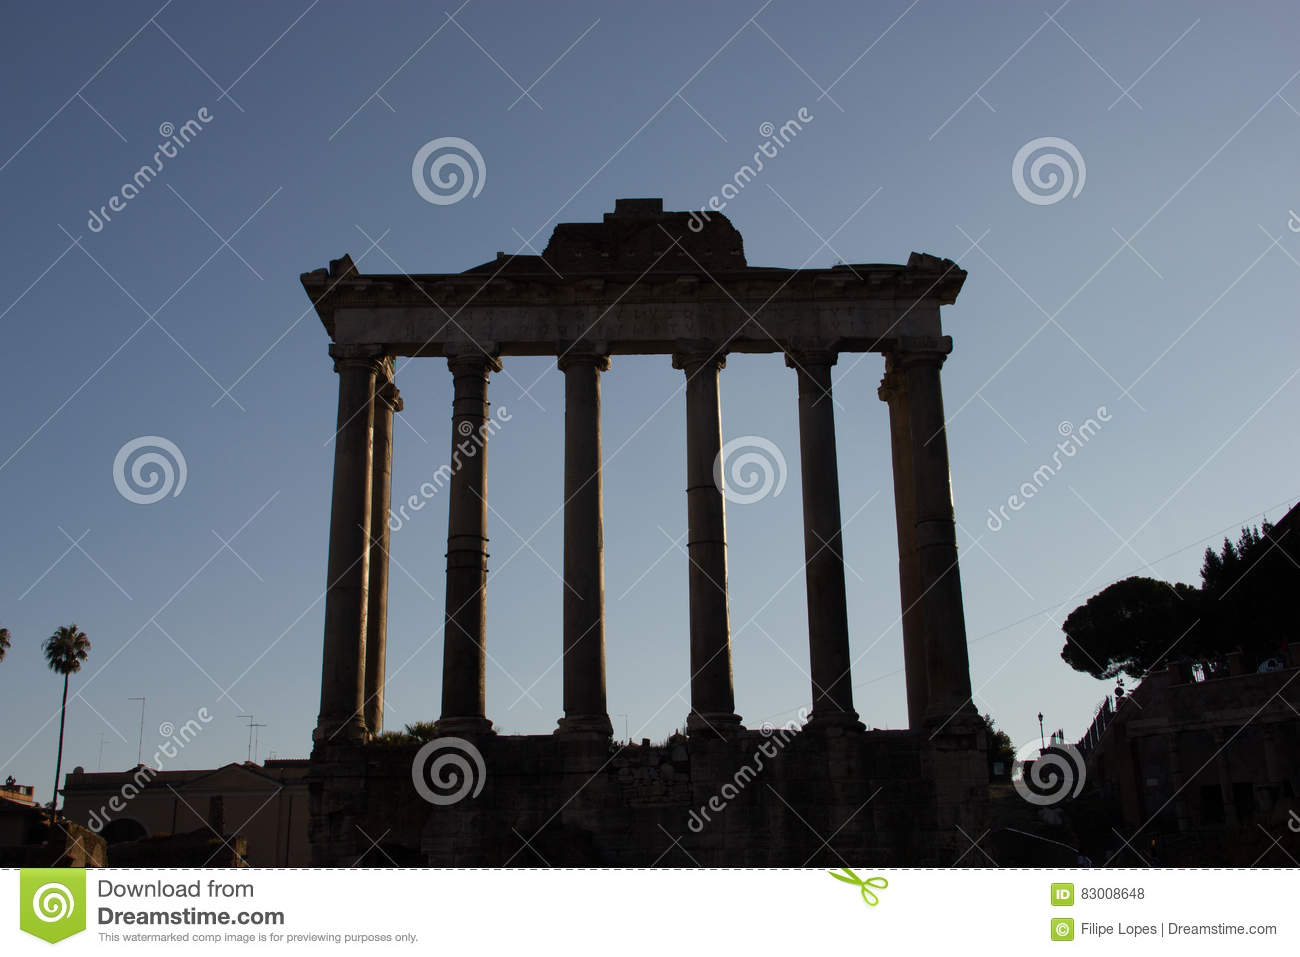 Temple of Saturn stock photo  Image of landmark, blue - 83008648